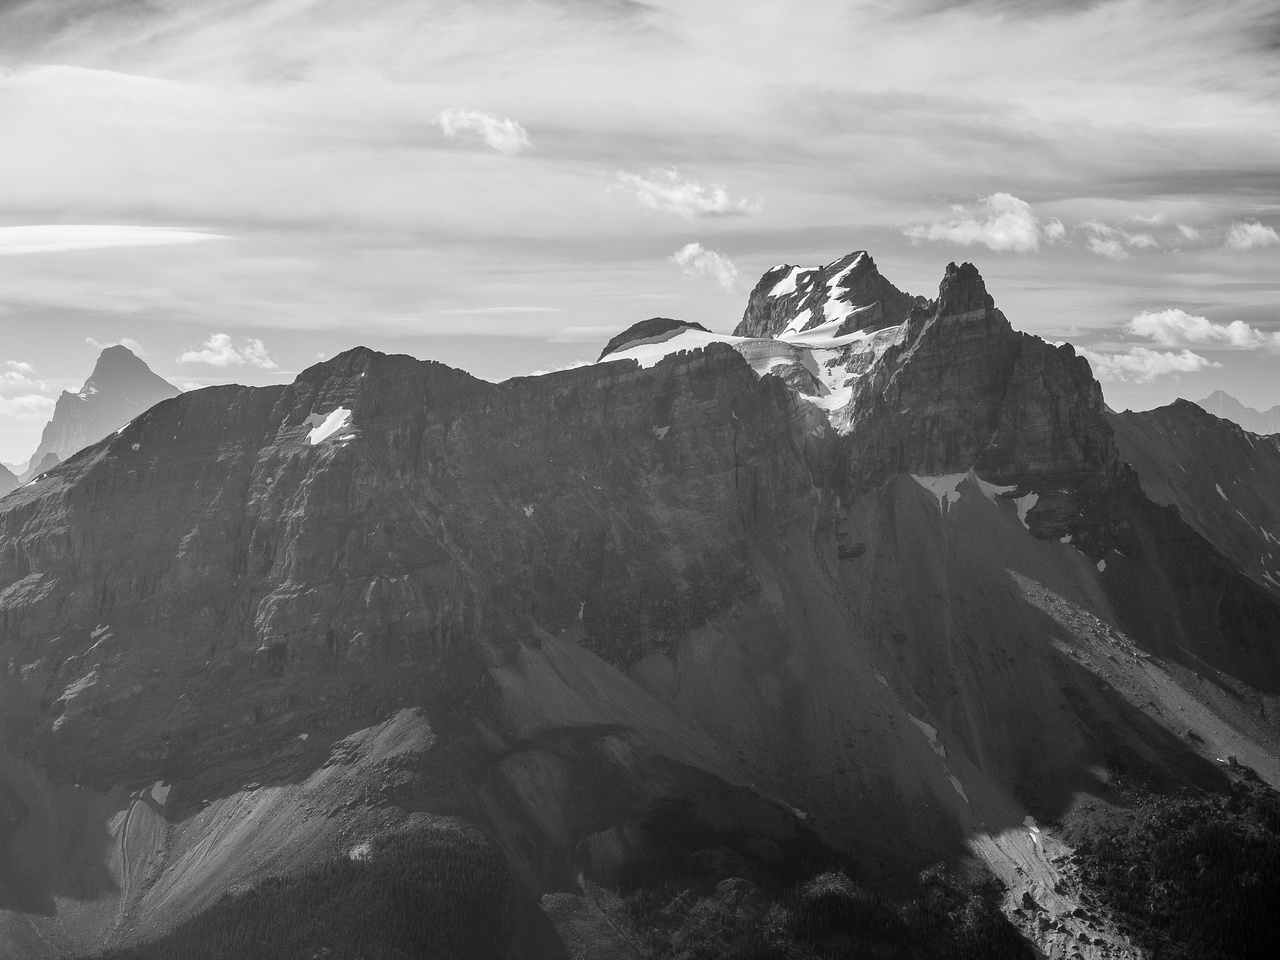 Cathedral Mountain / Crags is an impressive and beautiful Yoho Peak.